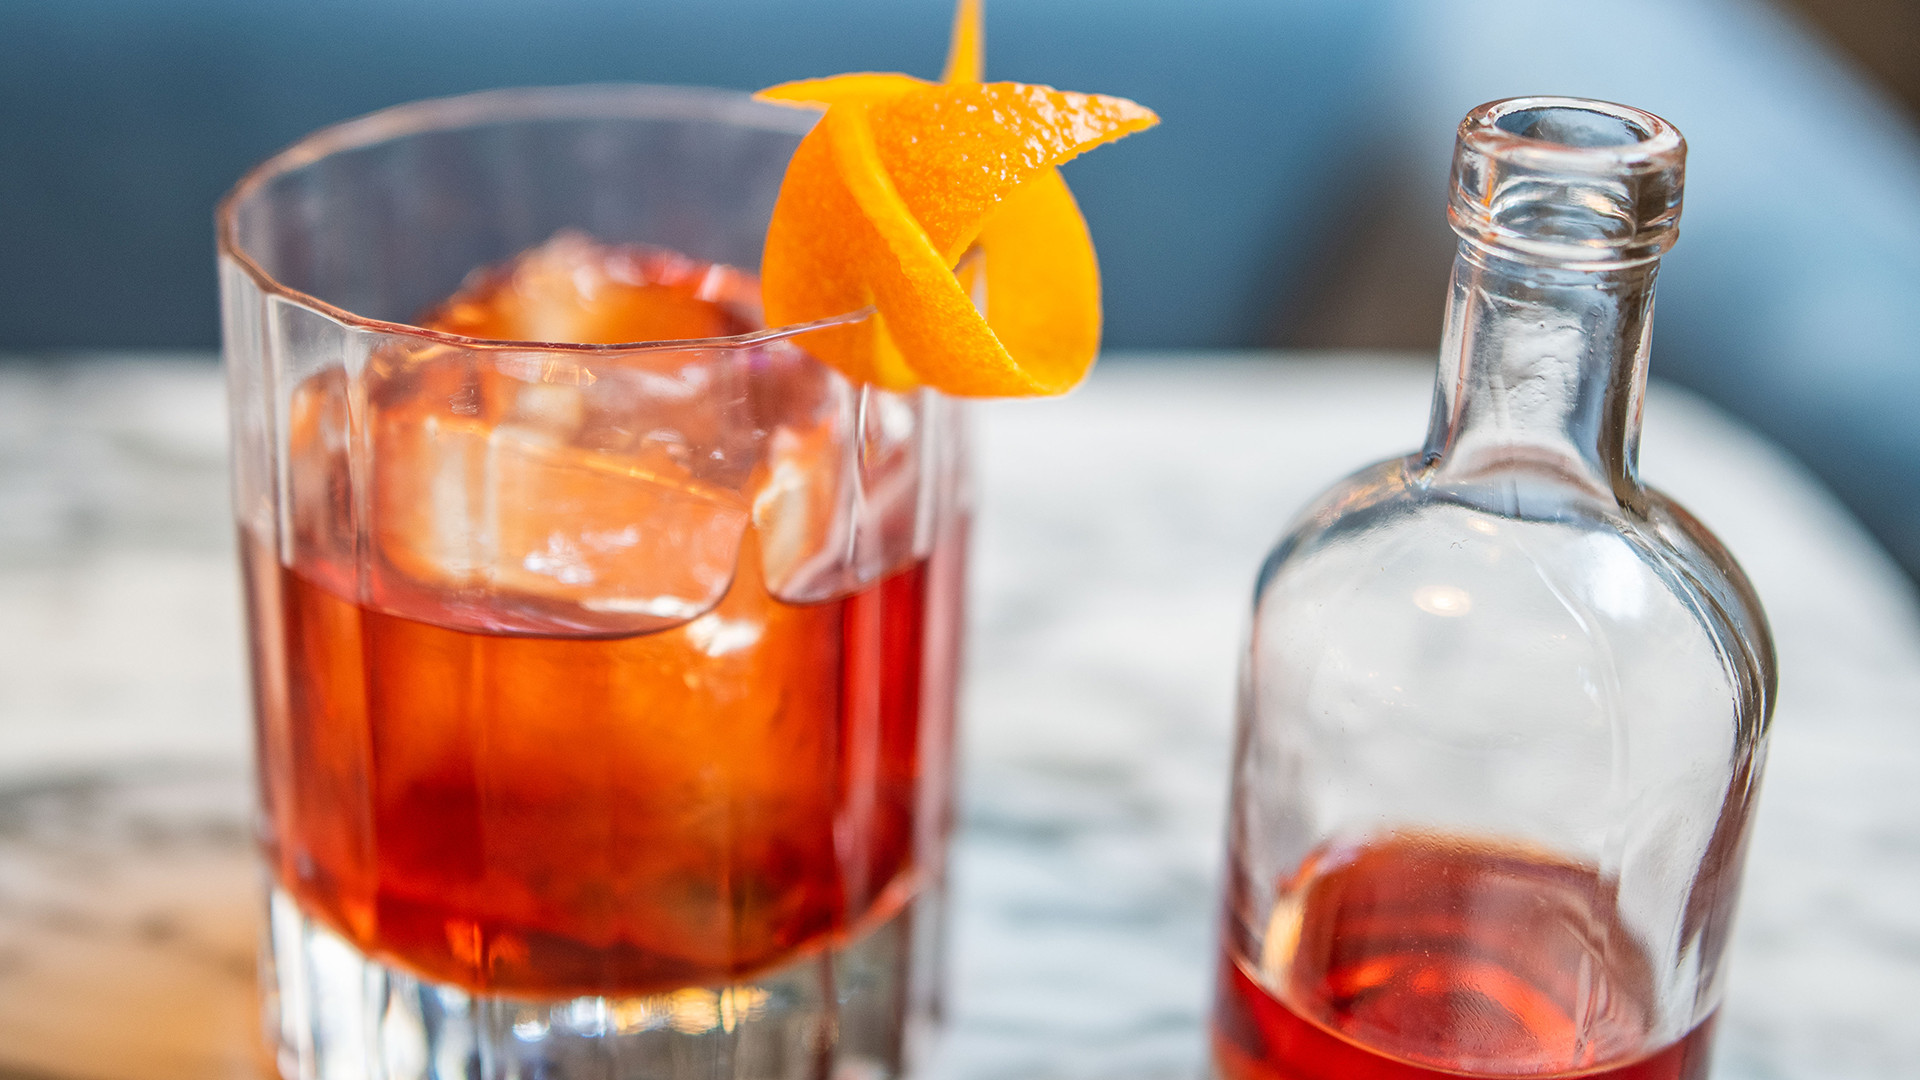 London's best aperitivo bars – Lino